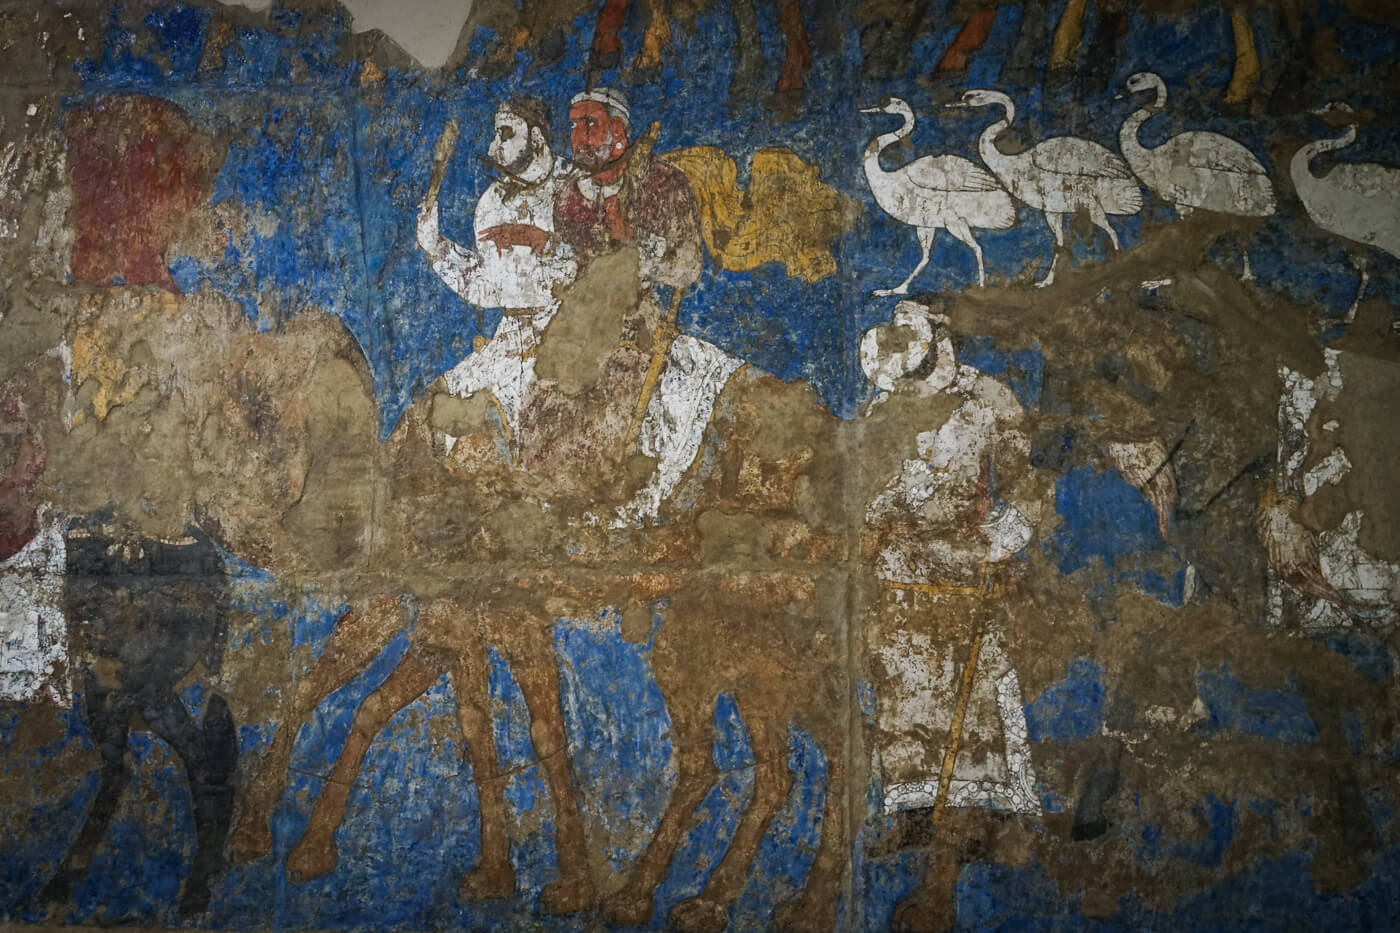 Sogdians of Central Asia, the ancient silk road traders mural from Samarkand